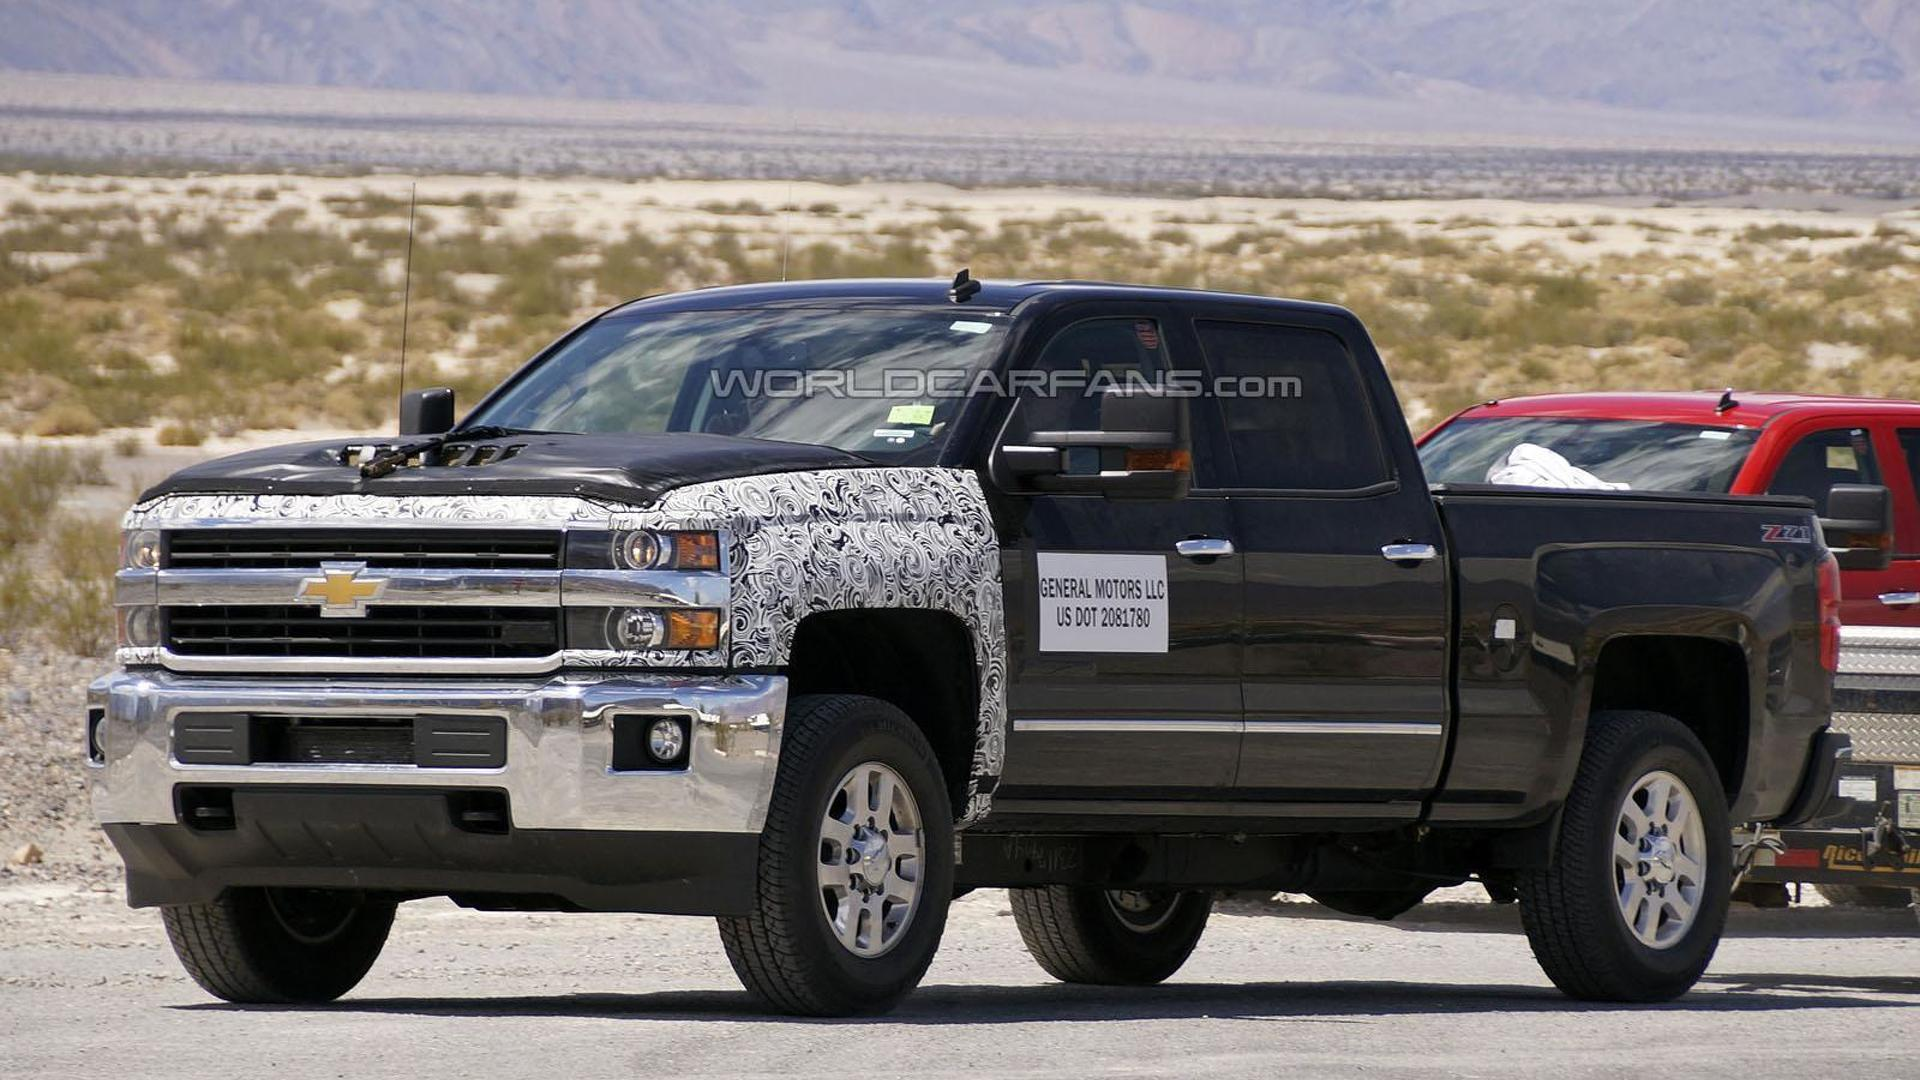 2016 Chevrolet Silverado Hd Spied Could Be Testing A New Sel Engine